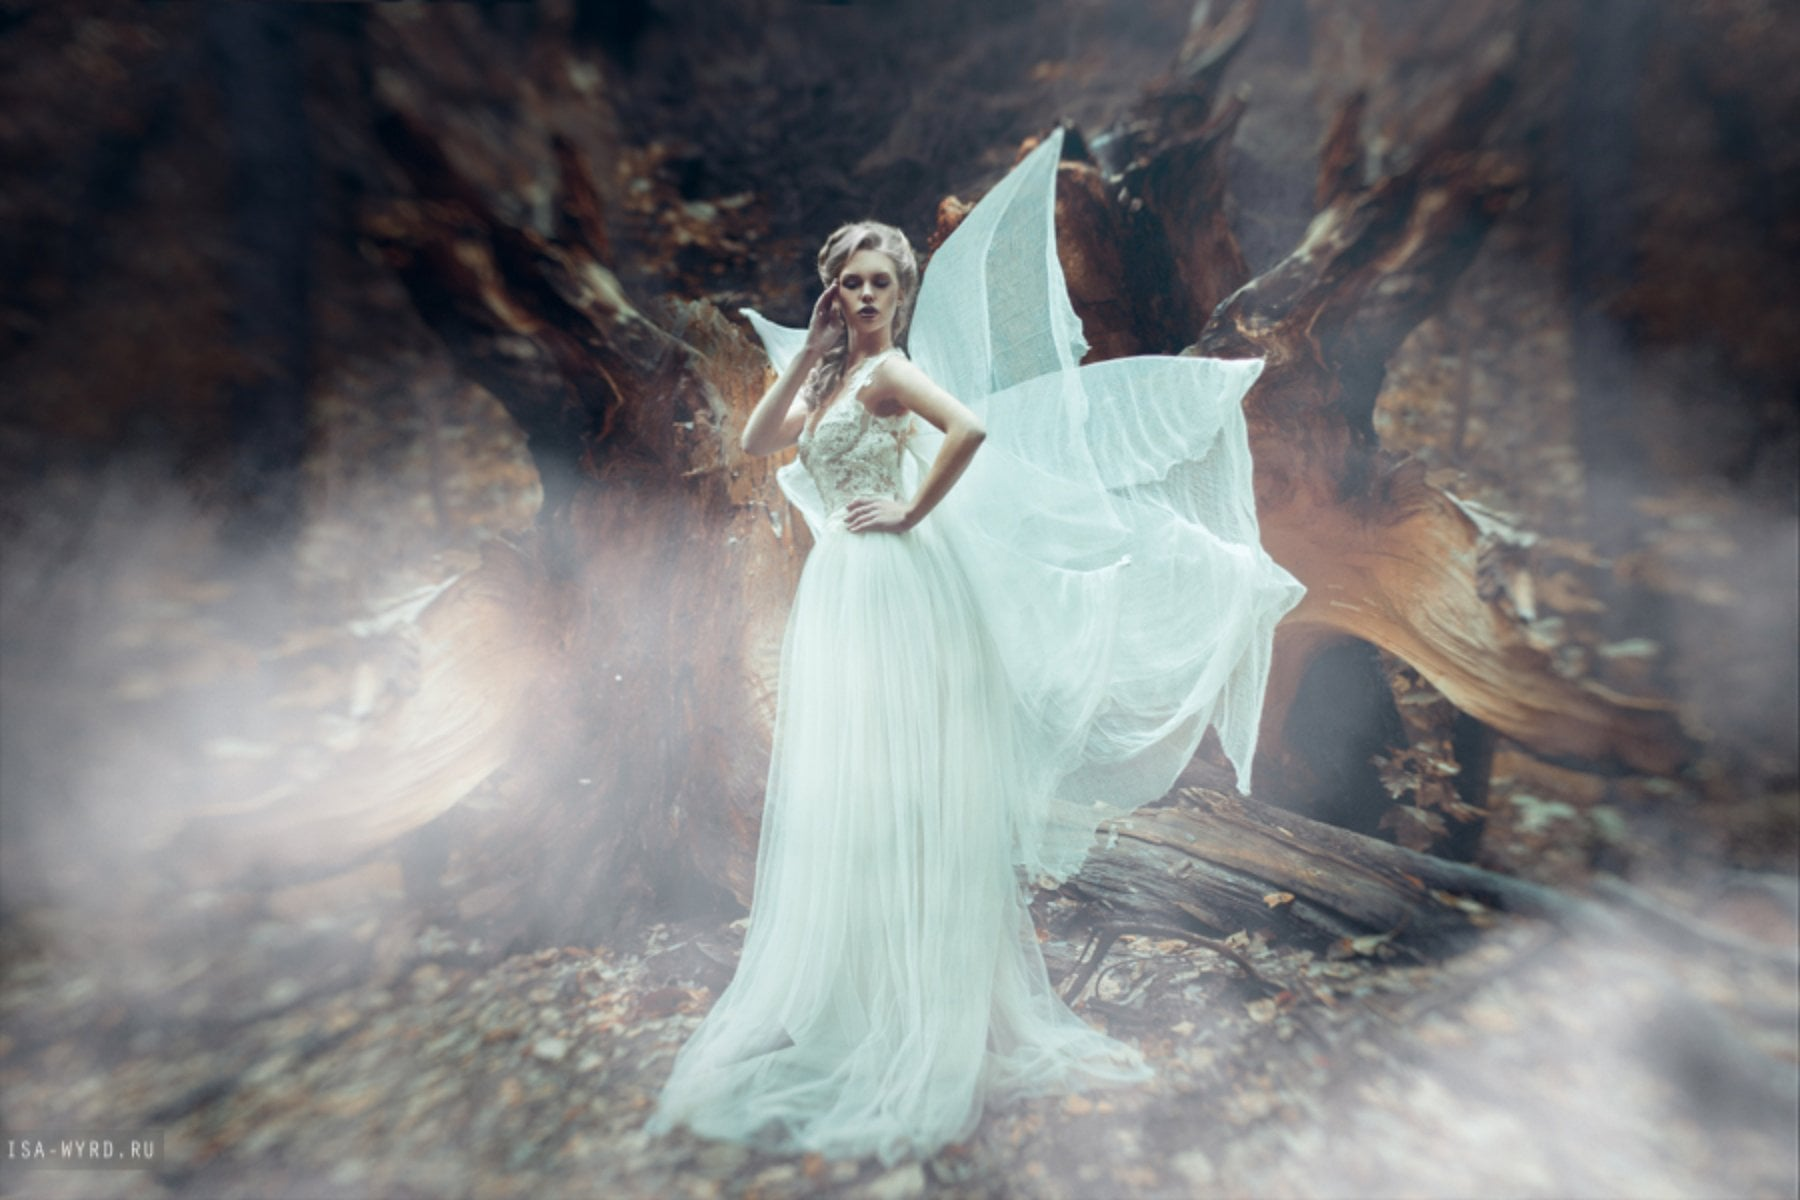 239 Fog Photo Overlays - just $15 - wings by isa wyrd d8q4s1w